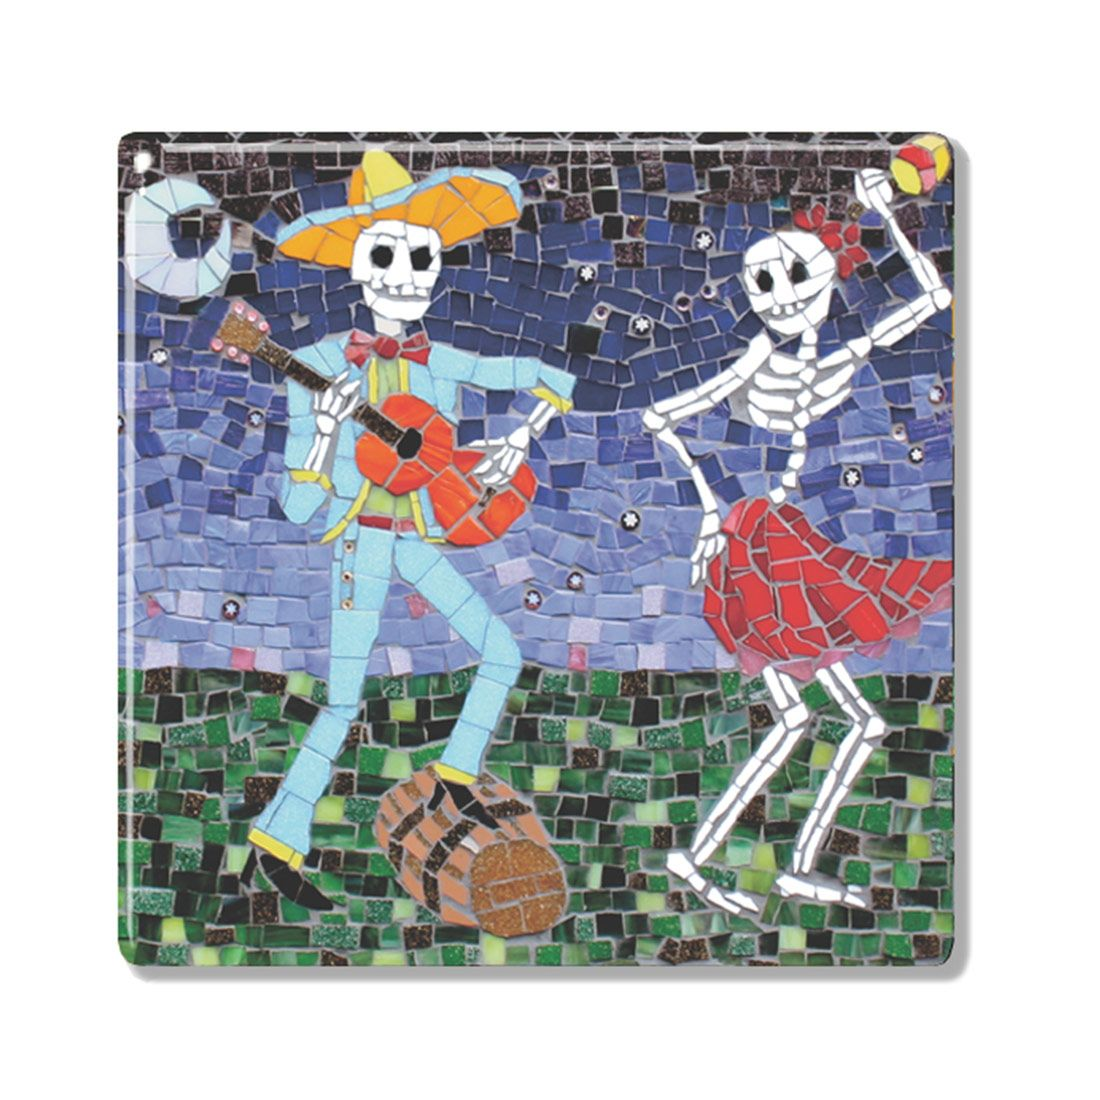 The dancers mexican day of the dead mosaic style ceramic coaster the dancers mexican ceramic coaster sugarskull dayofthedead skulls skeleton gifts dailygadgetfo Choice Image